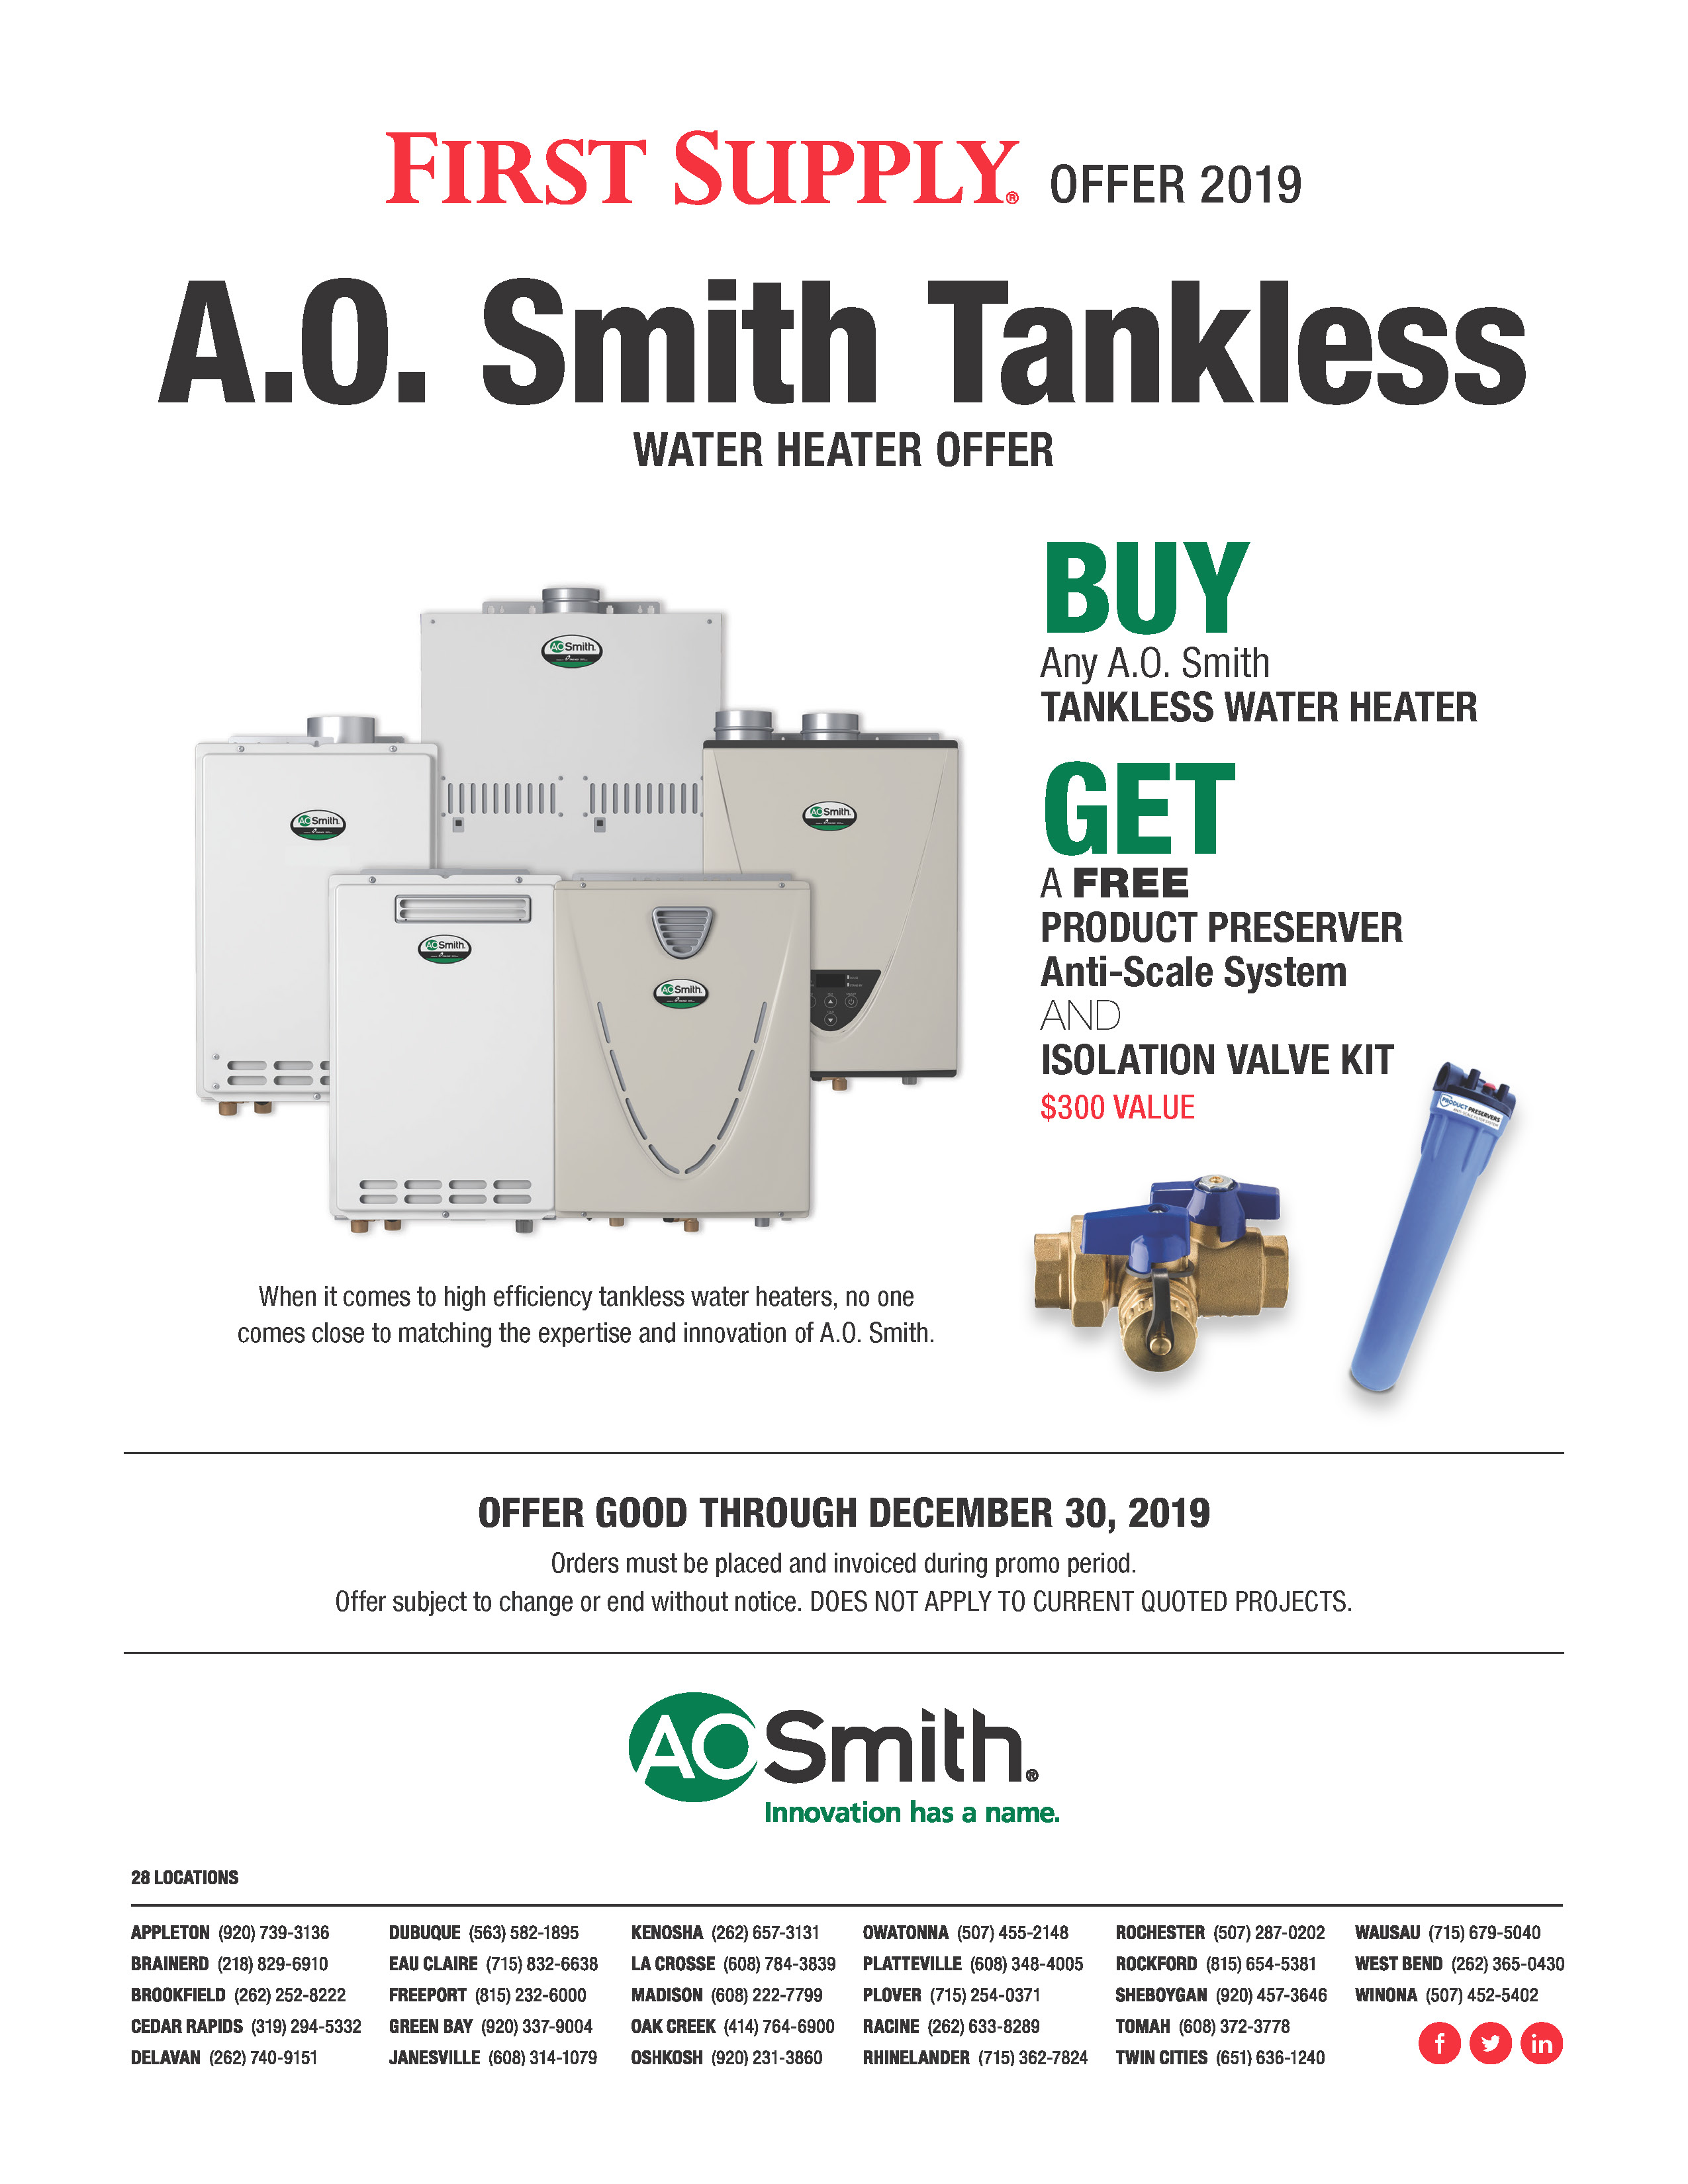 A.O. Smith Tankless Offer